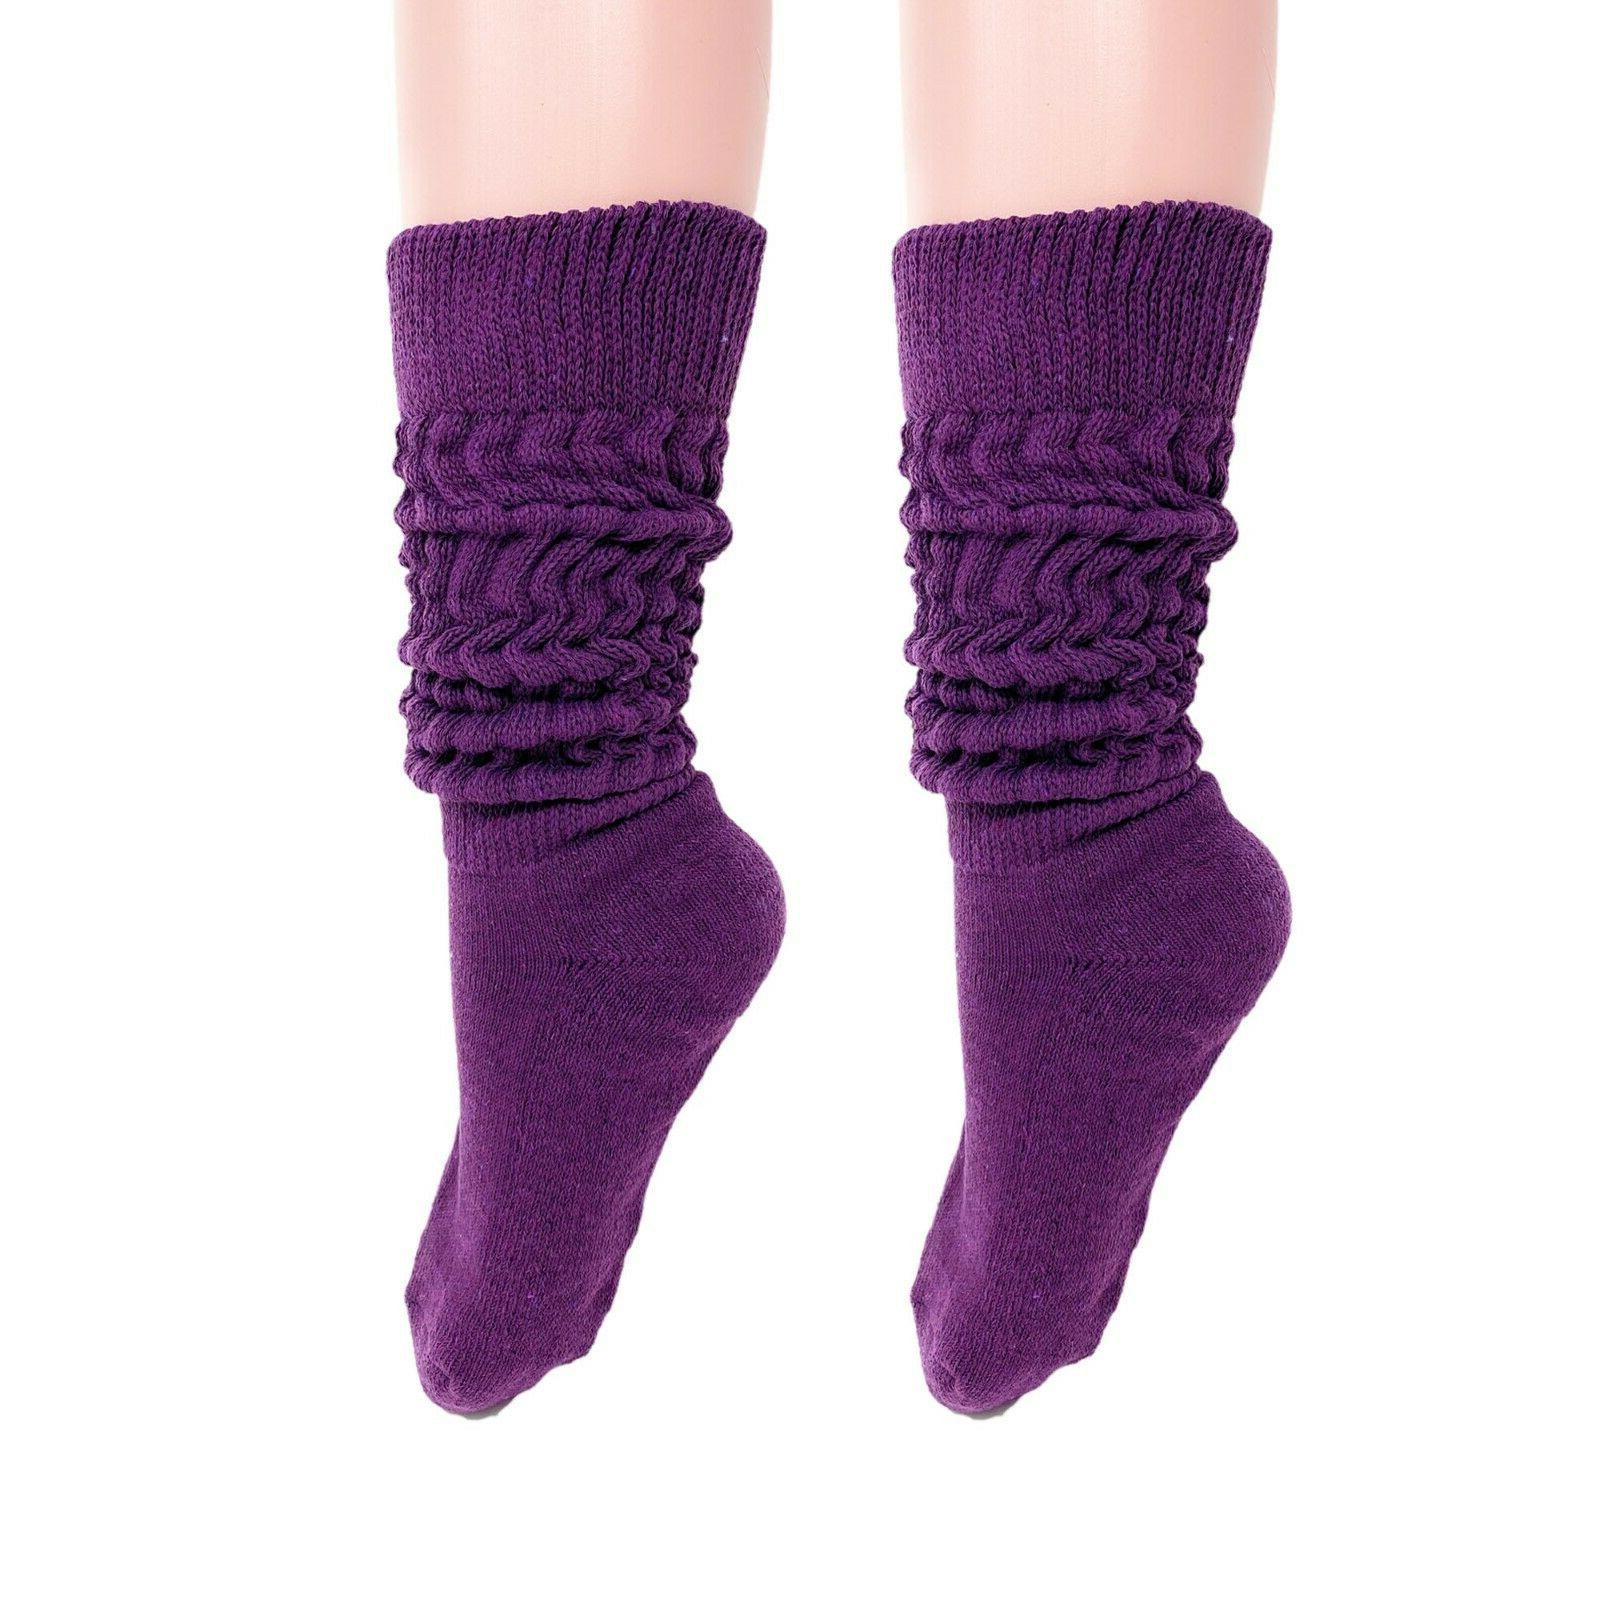 Slouch Women and Men Socks PAIRS 9-11